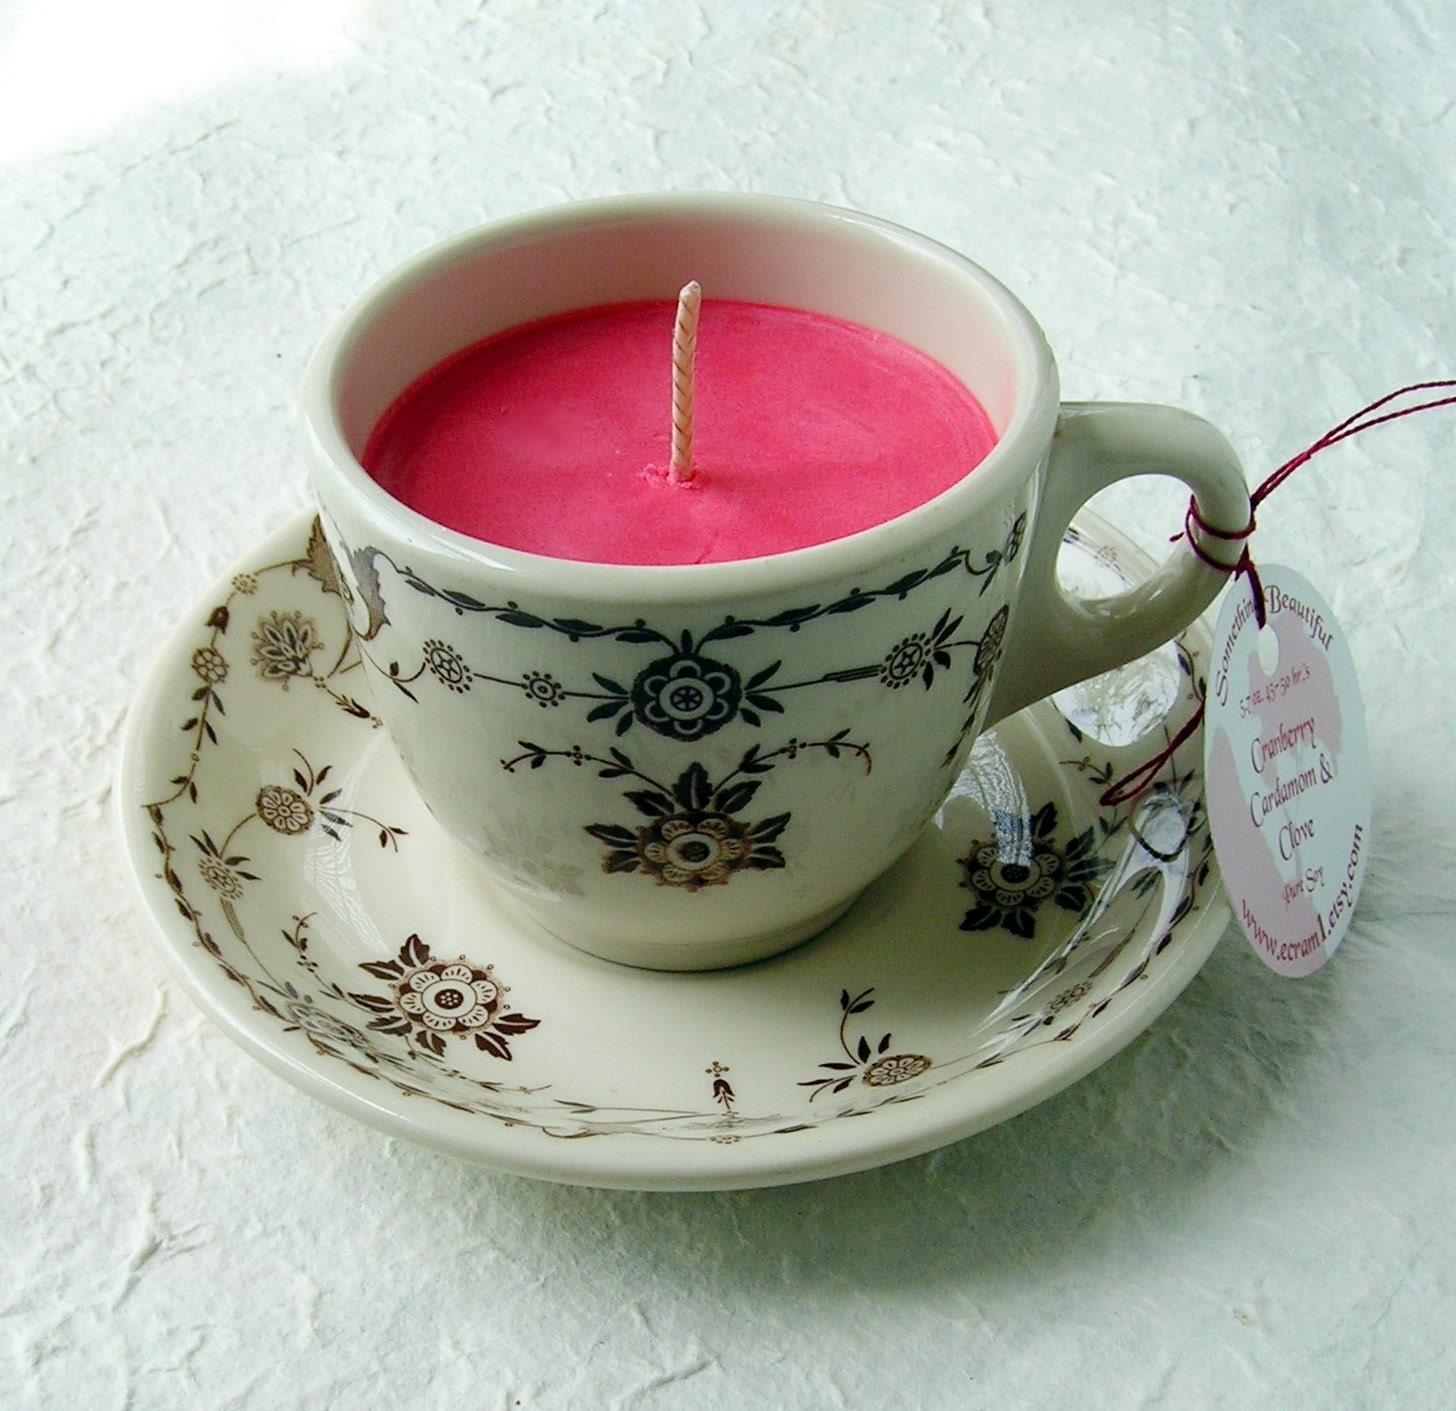 Cranberry Cardamom and Clove Soy Teacup Candle